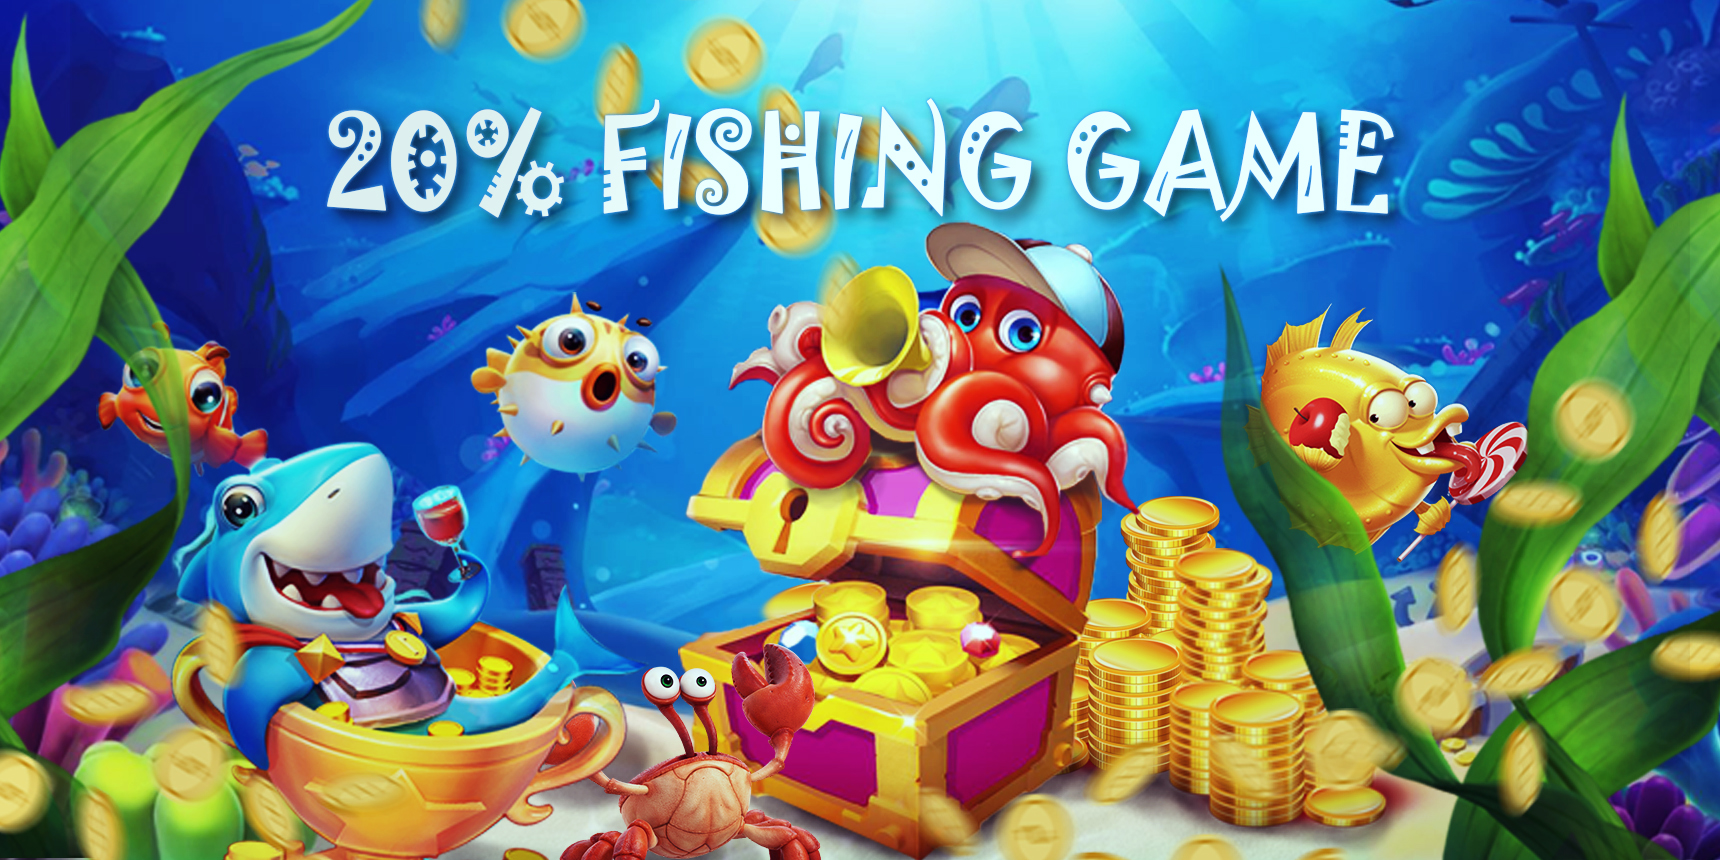 20% fishing game -onlinelivecasino33.com